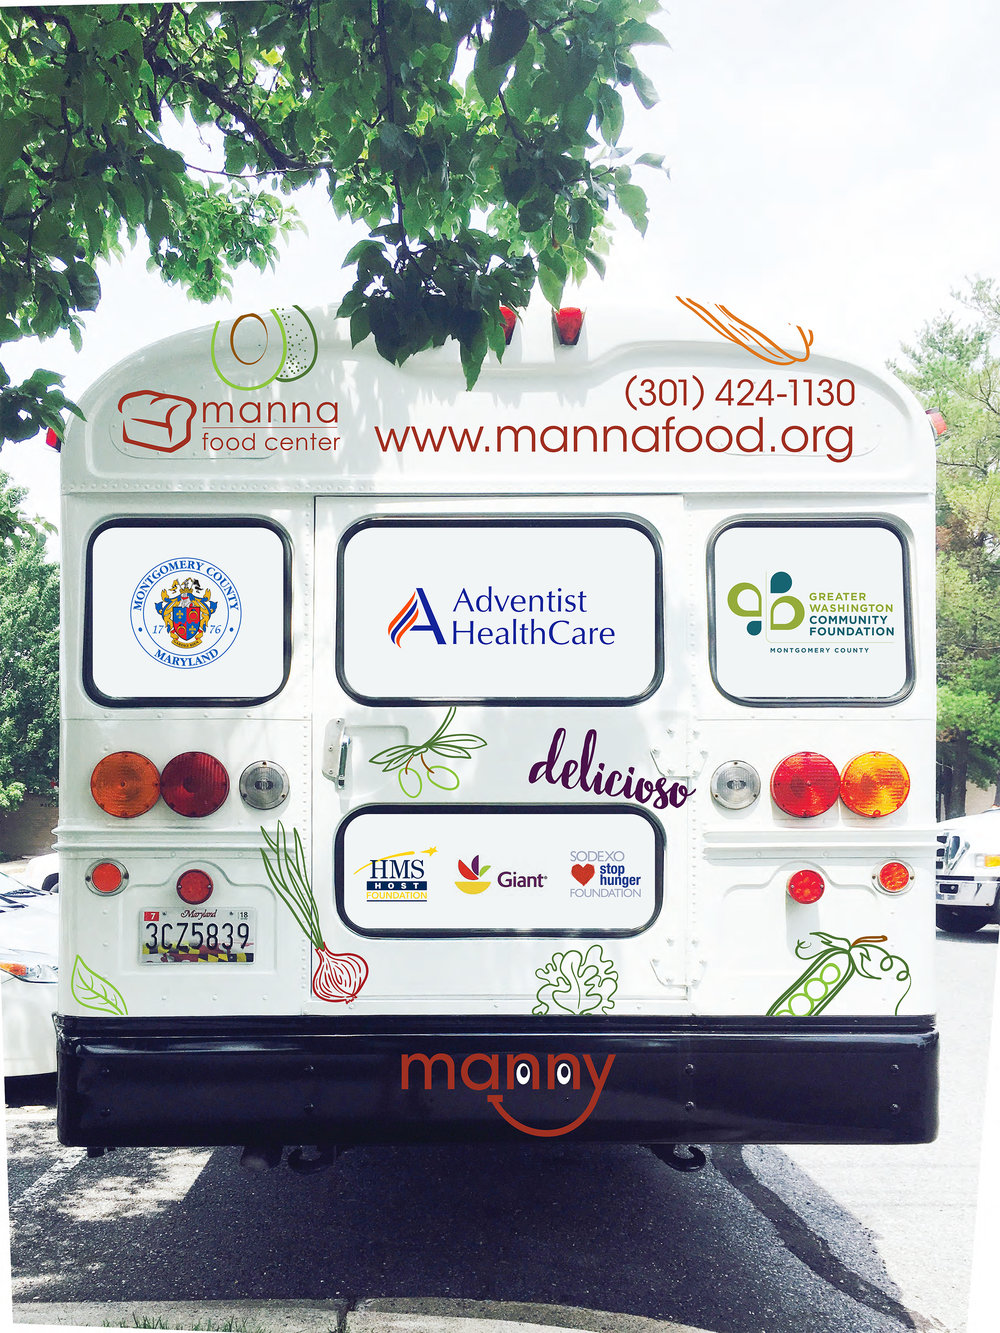 """Manny"" the mobile kitchen and pop-up pantry from Manna Food Center."